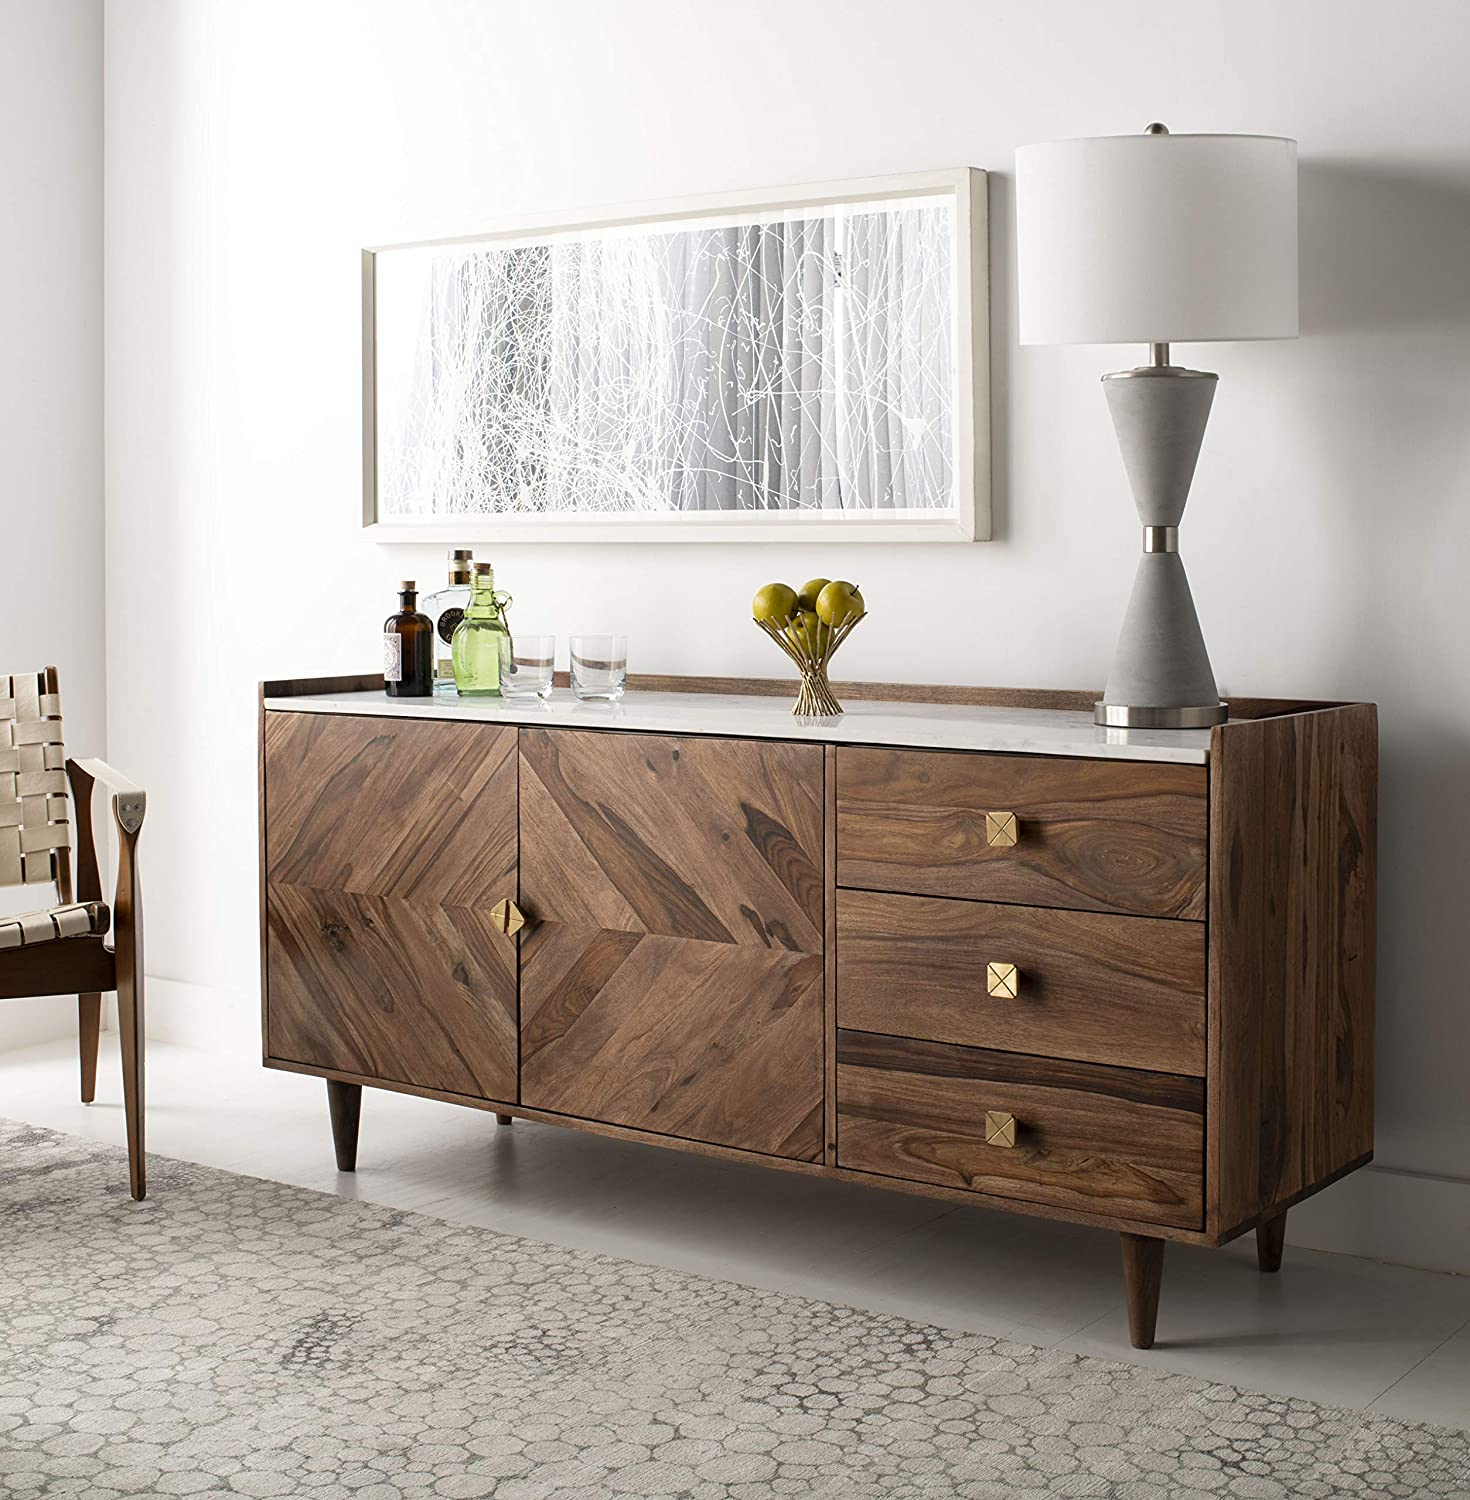 Safavieh Couture Home Cora Modern Natural Acacia and White Marble Sideboard